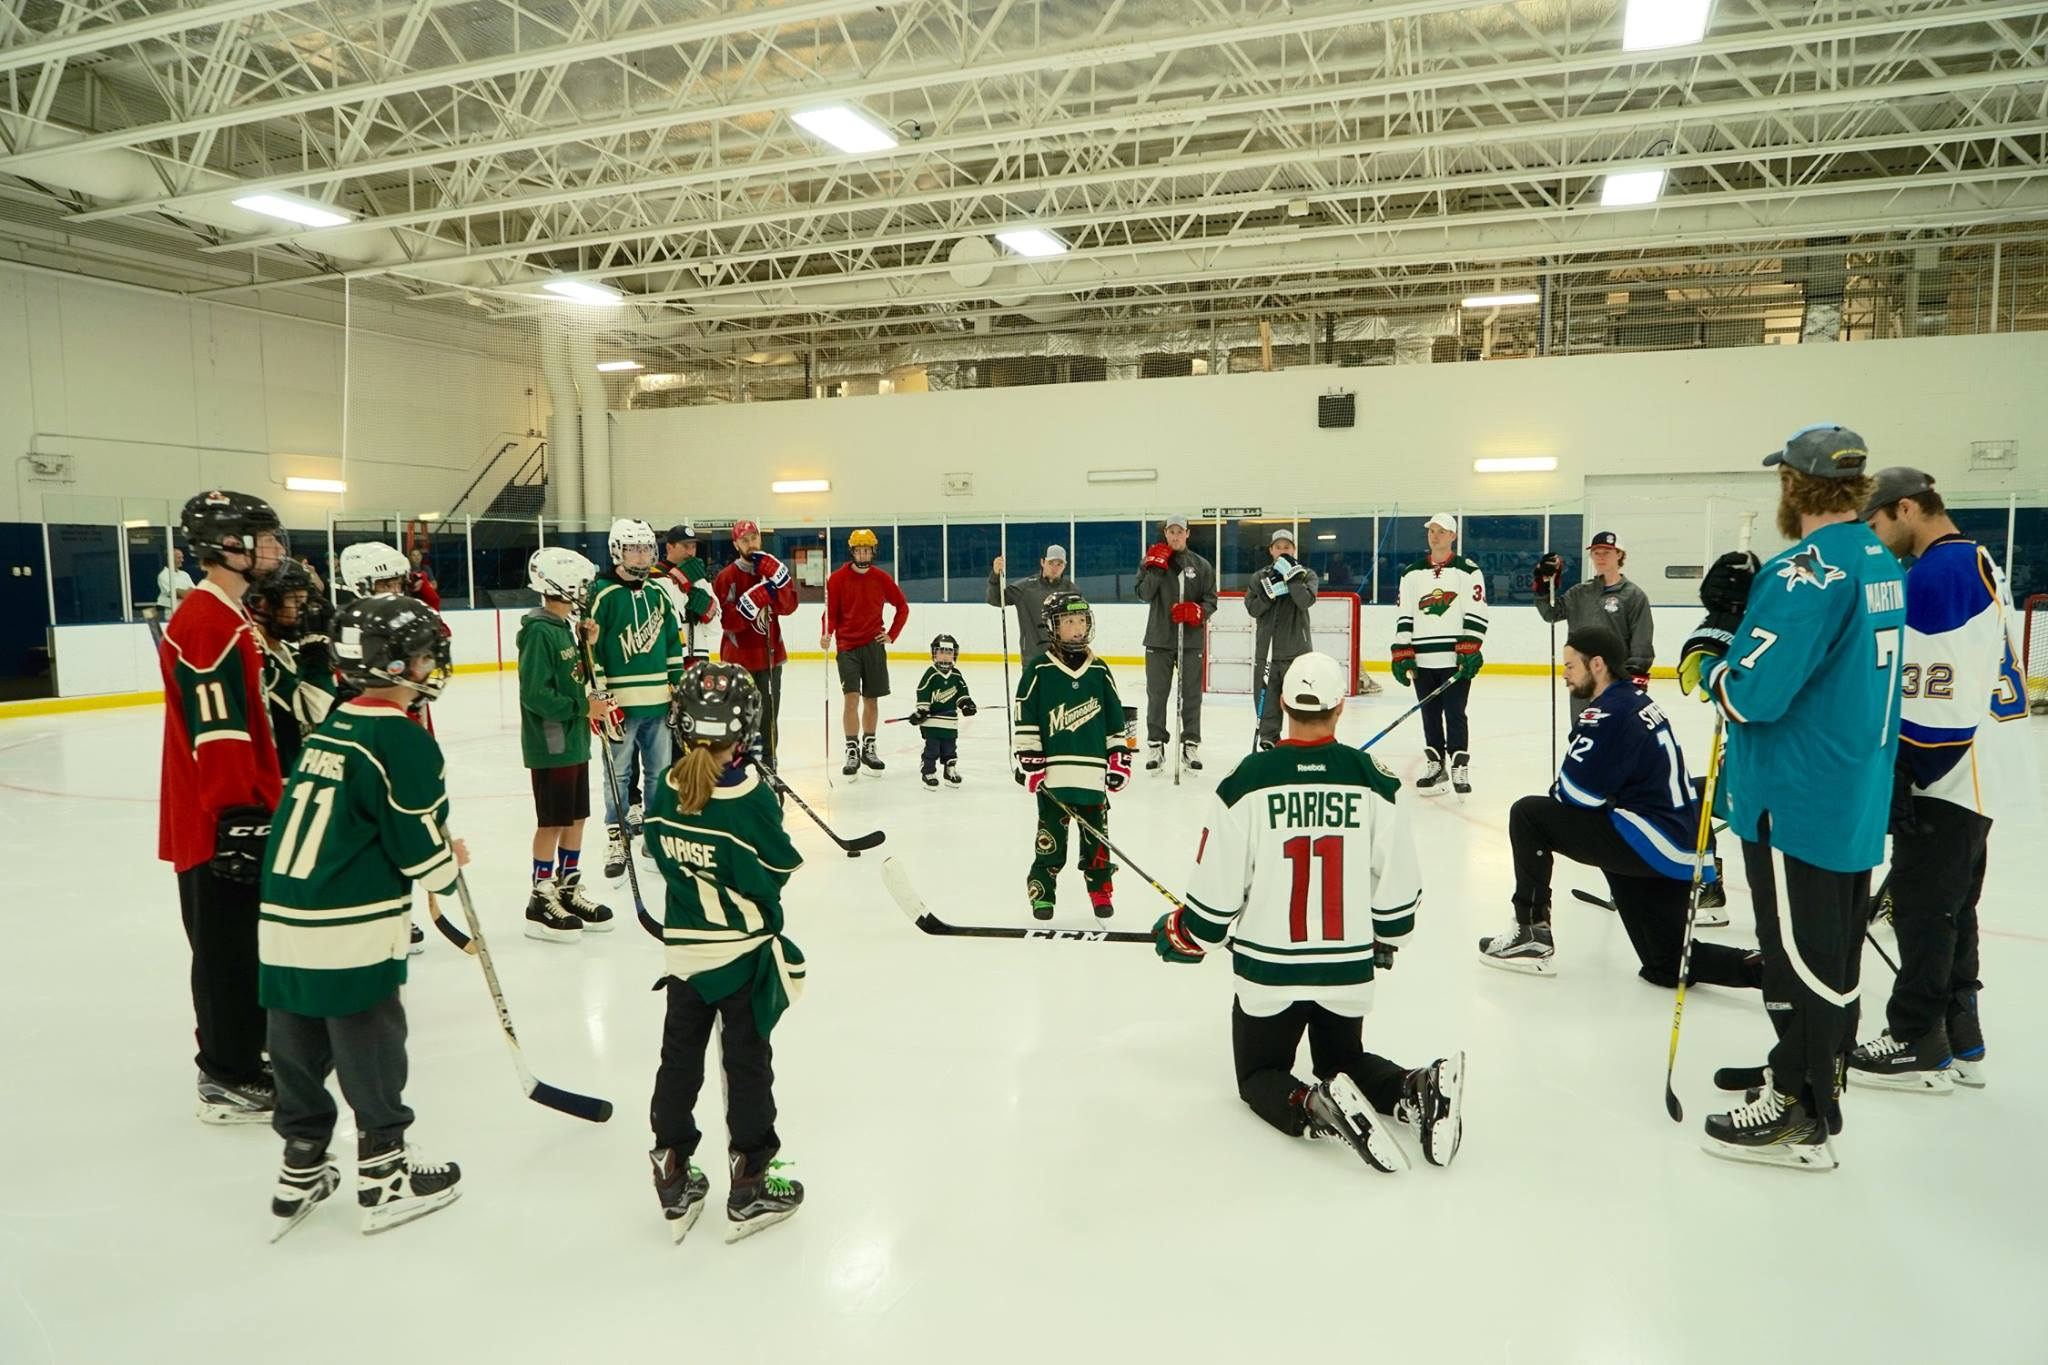 Skate with Zach Parise 2017